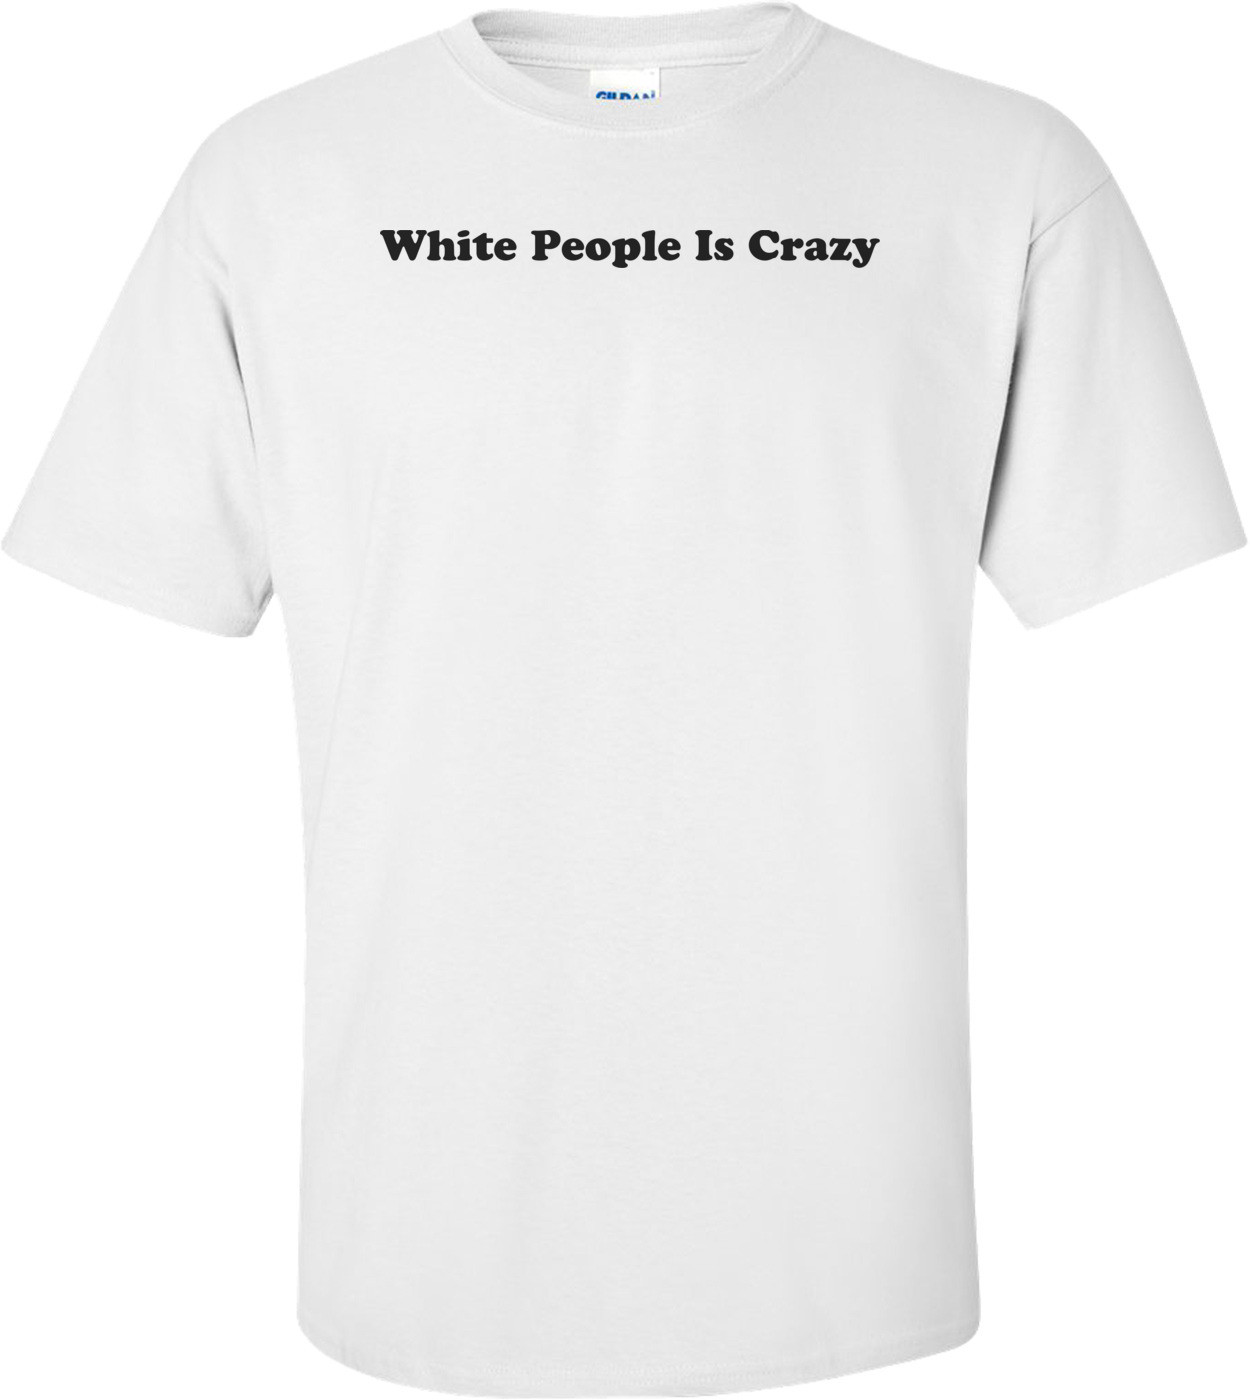 White People Is Crazy Shirt